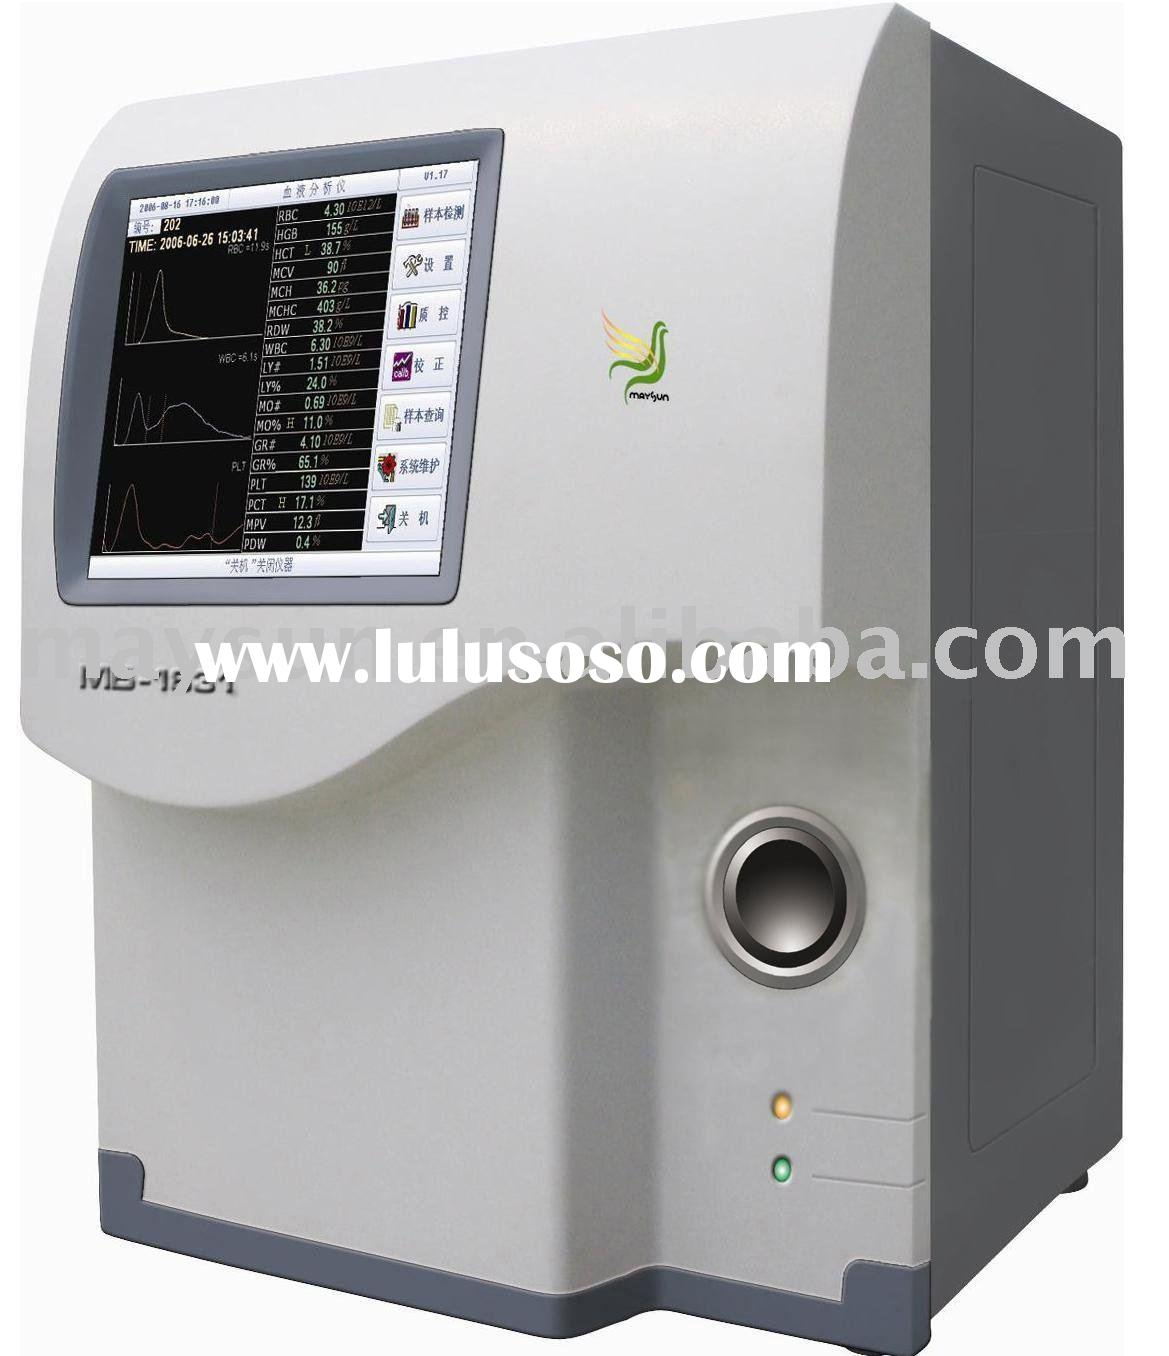 hospital/clinic/lab medical blood test equipment for patient